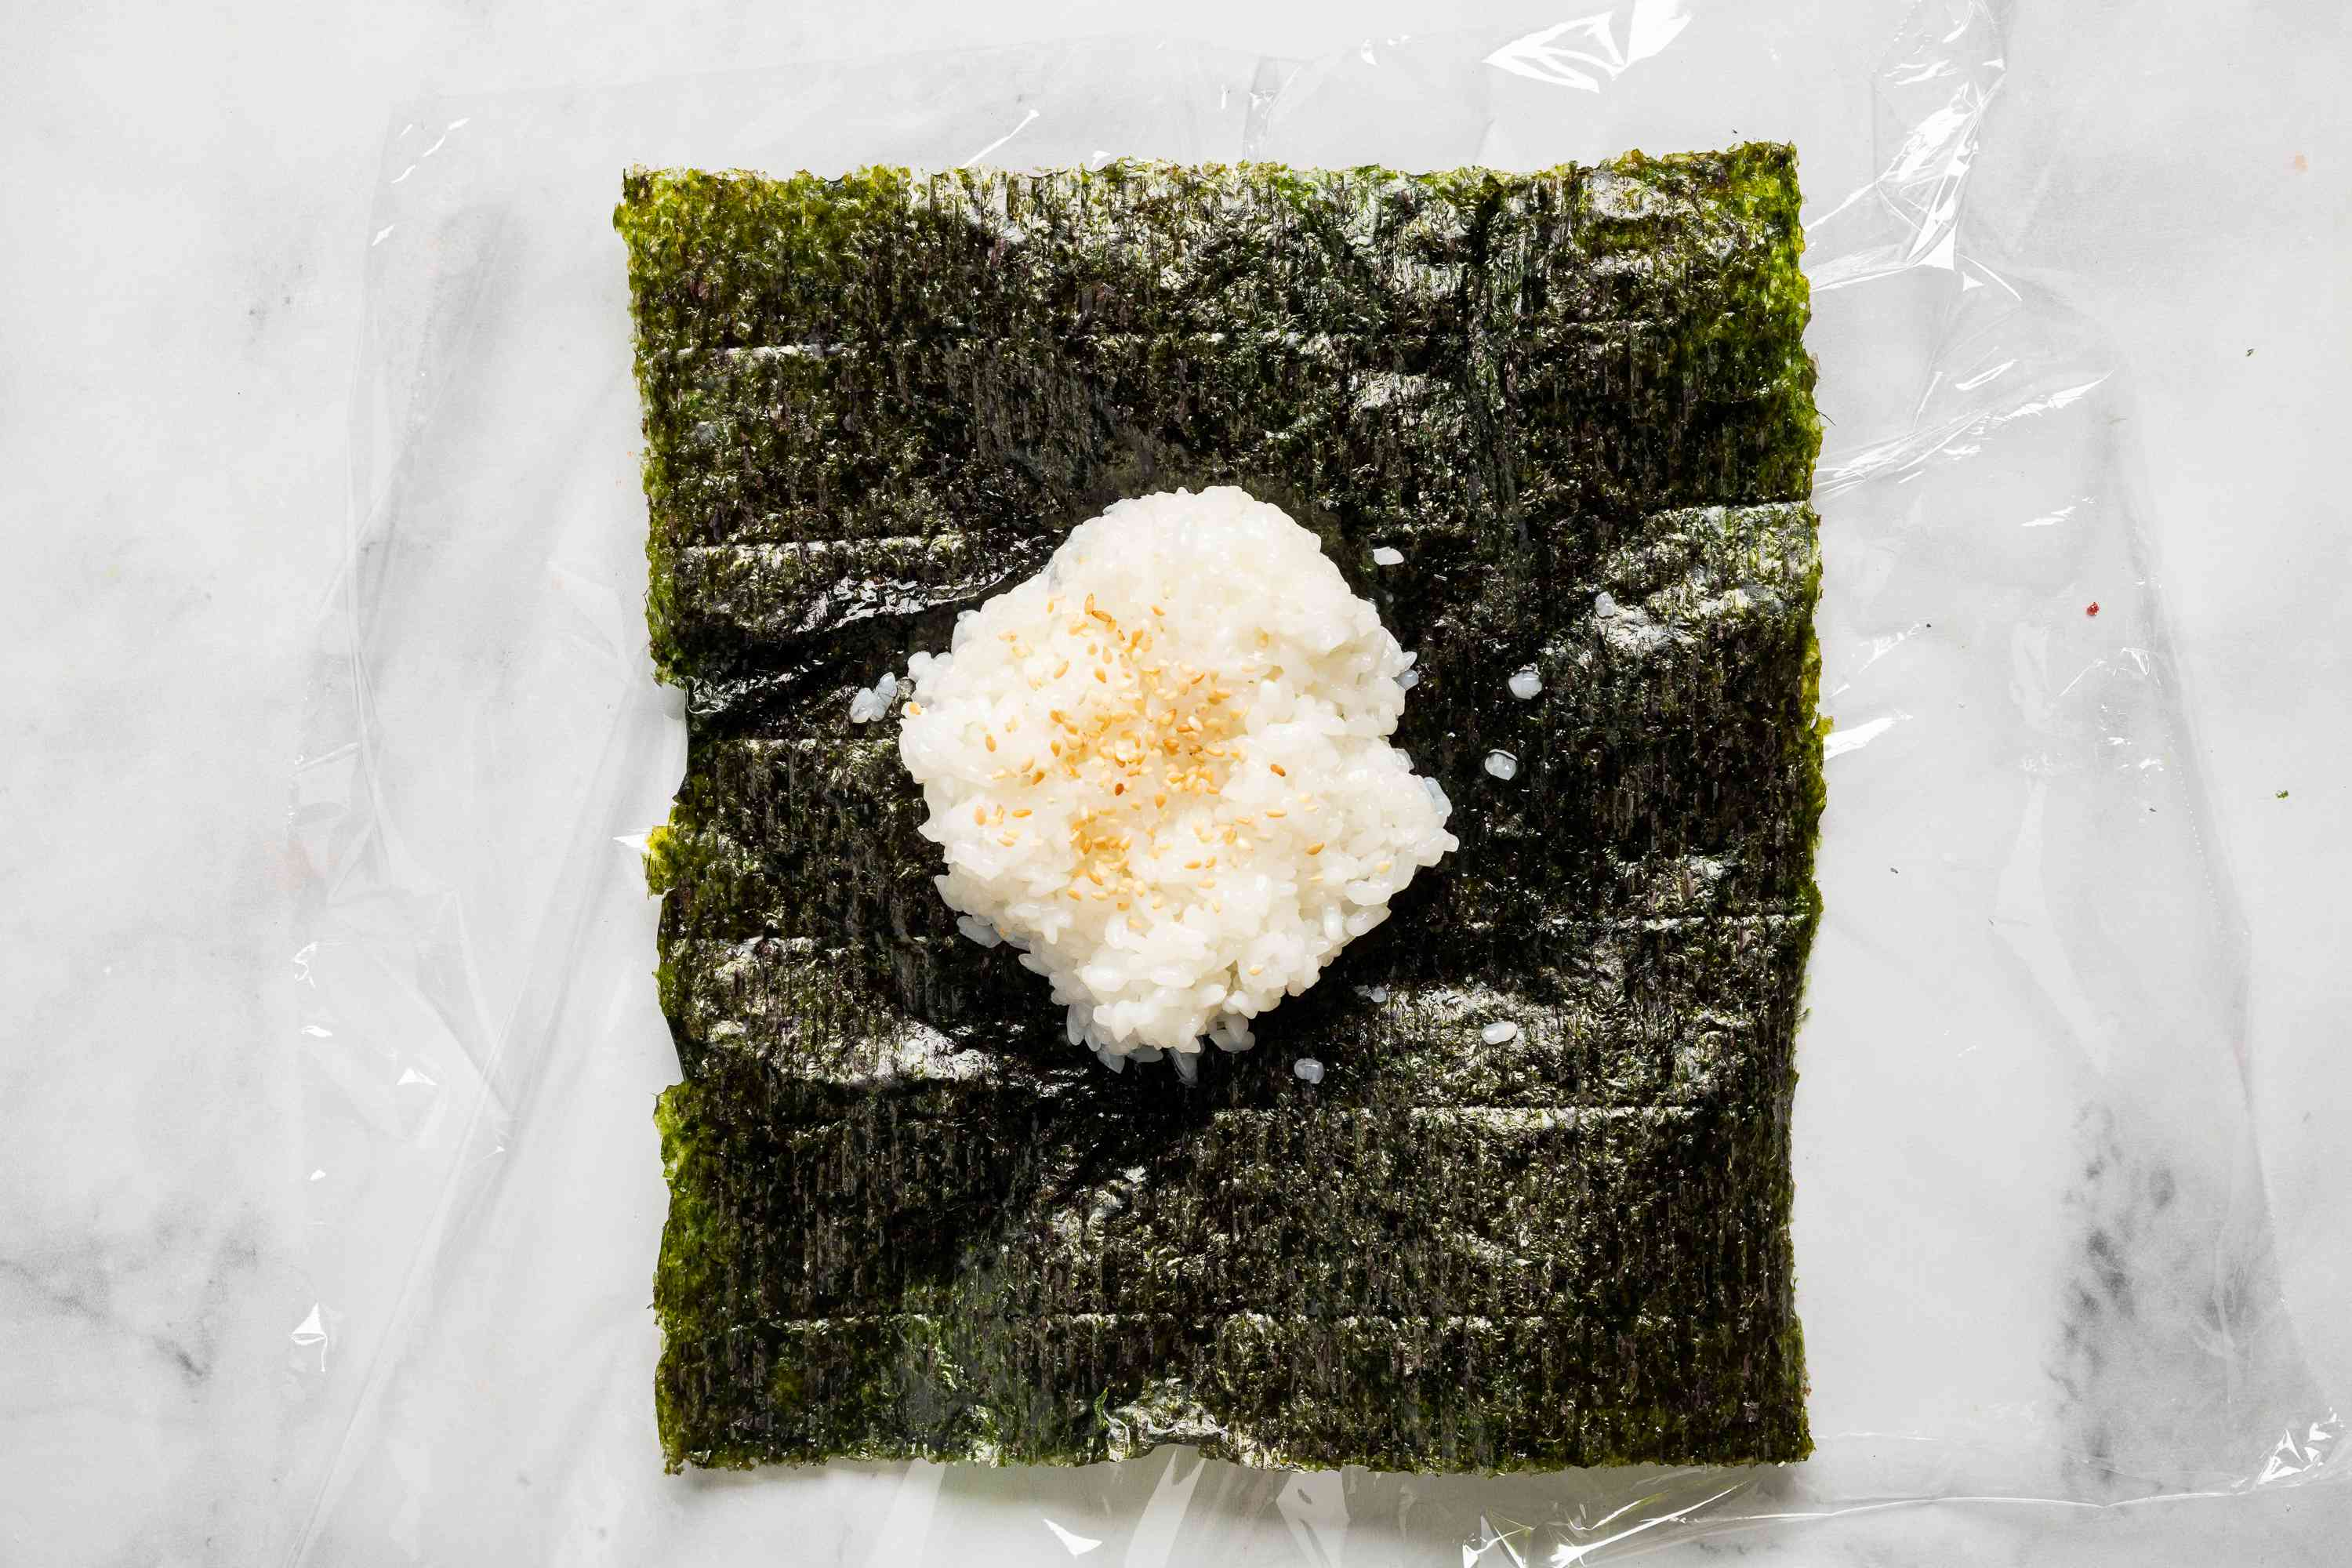 rice on top of a seaweed sheet